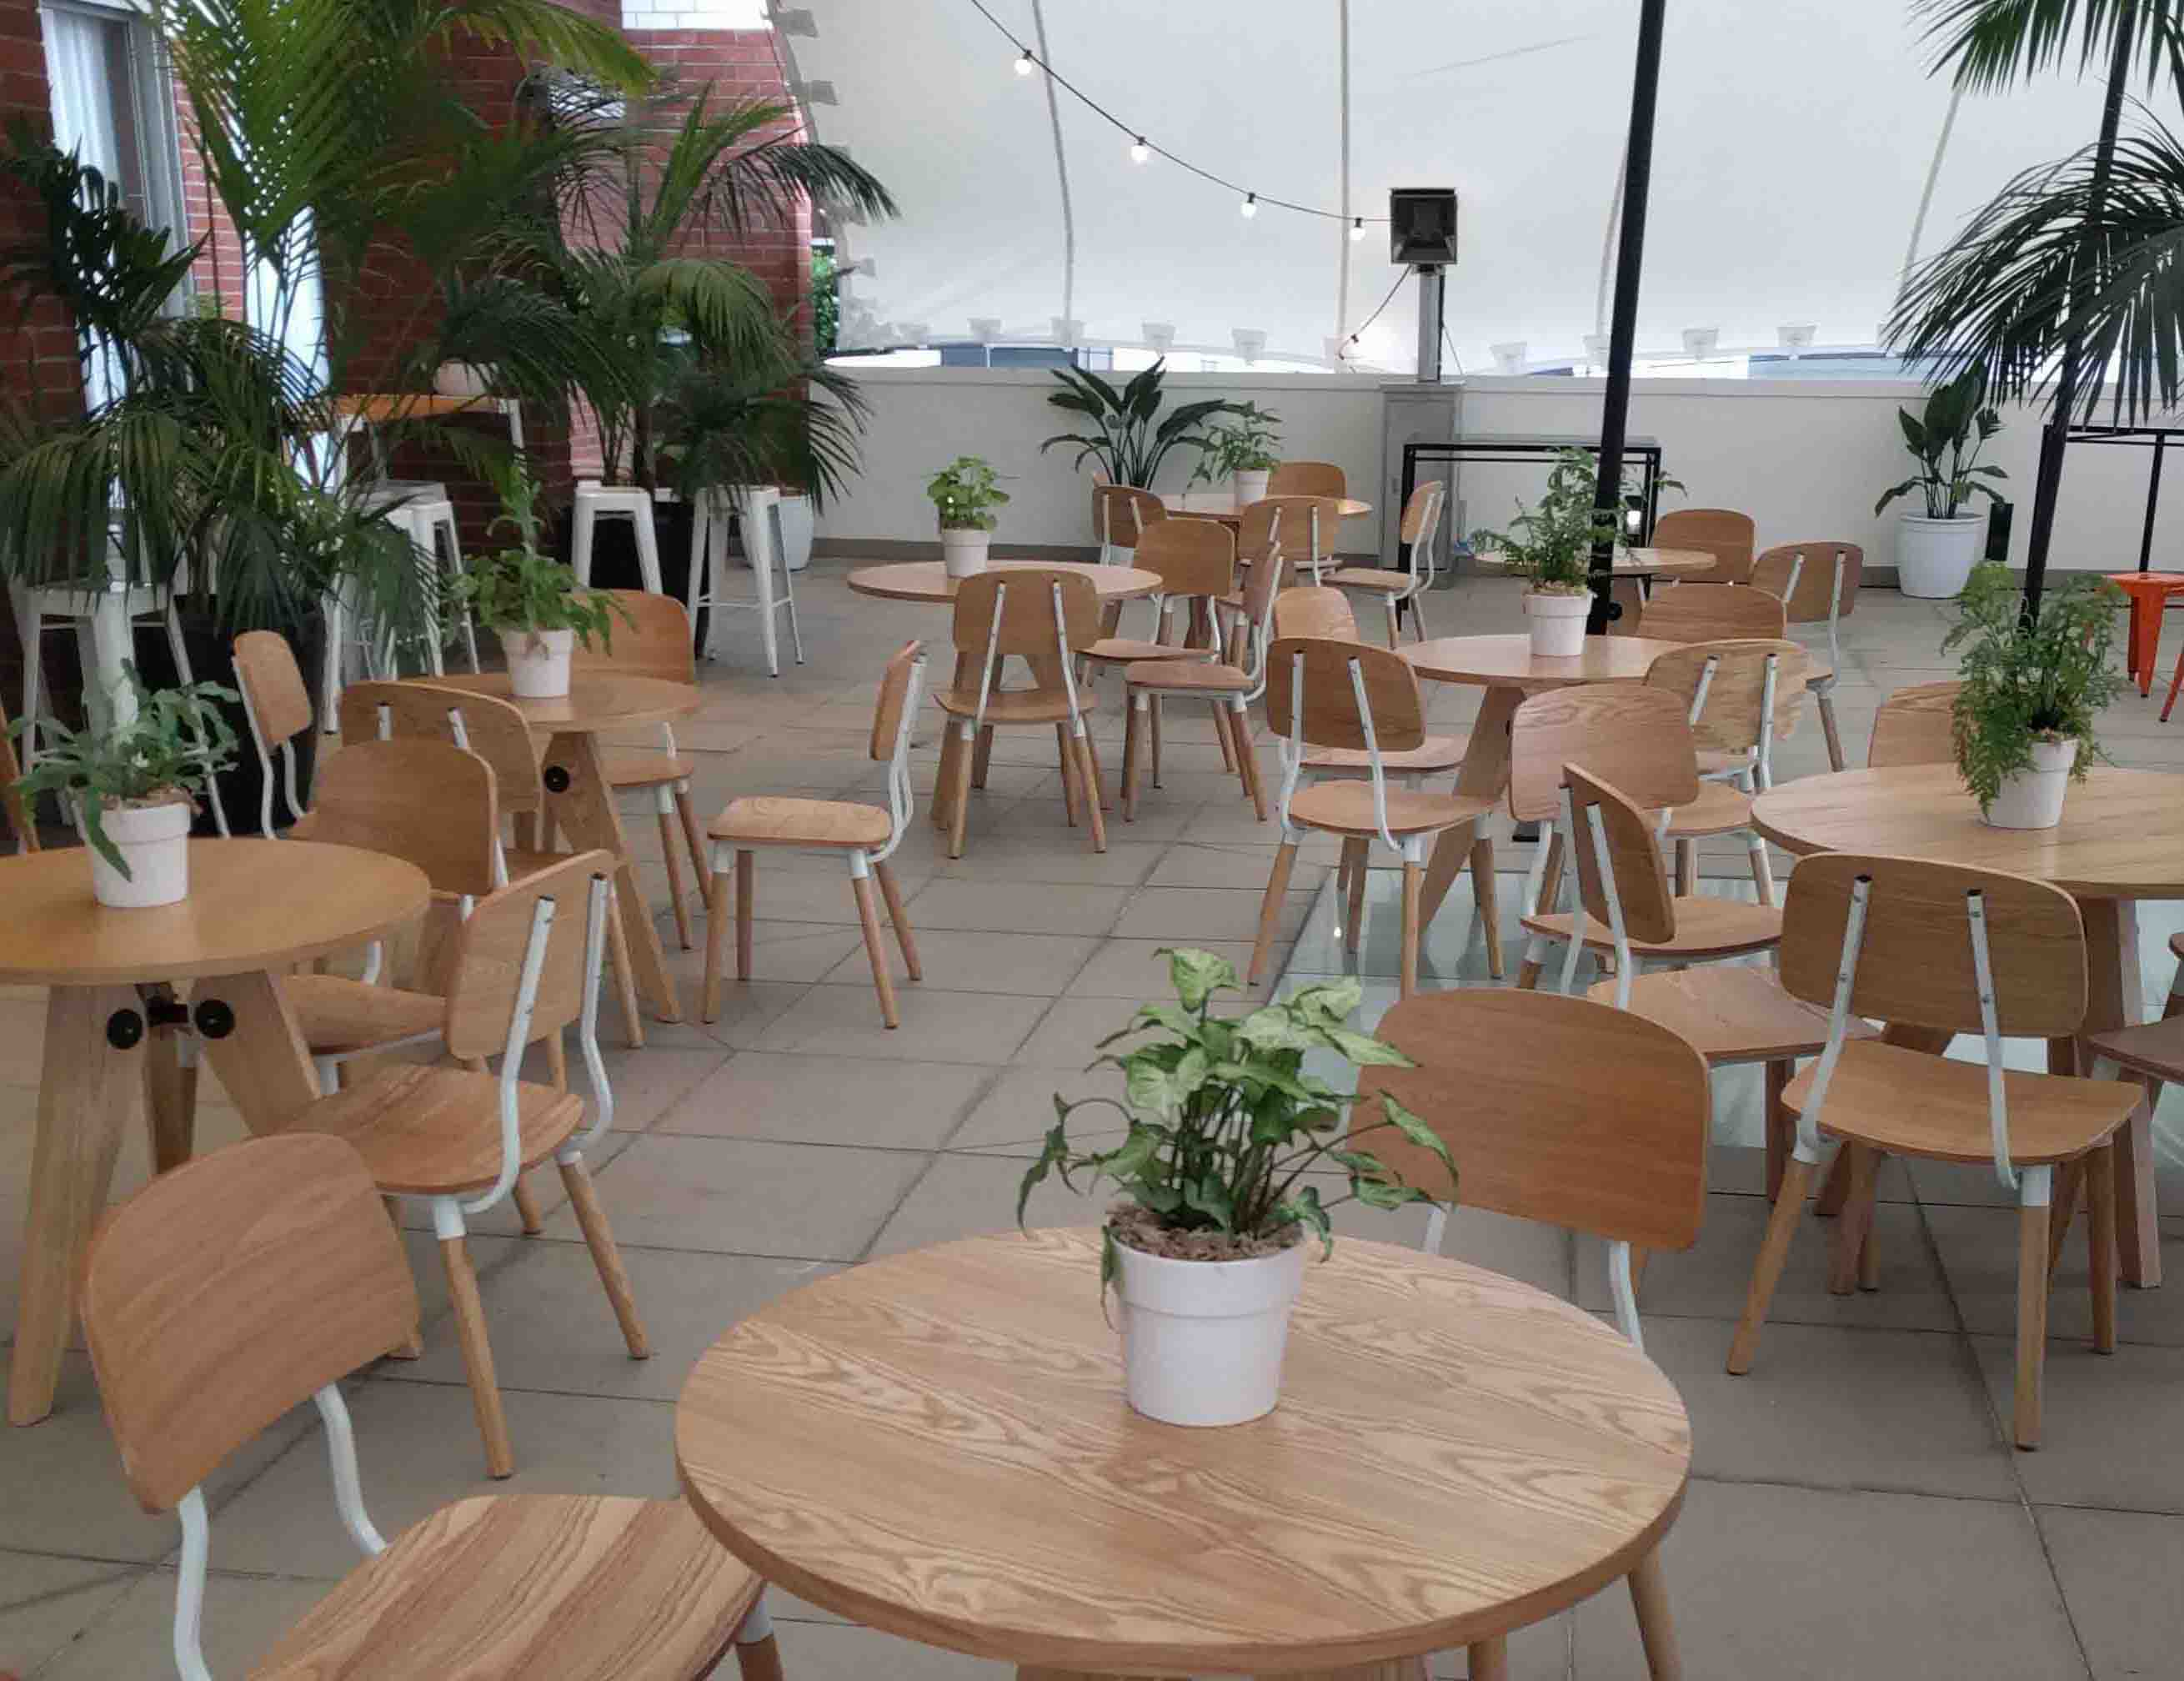 View our furniture packages to hire for your next event